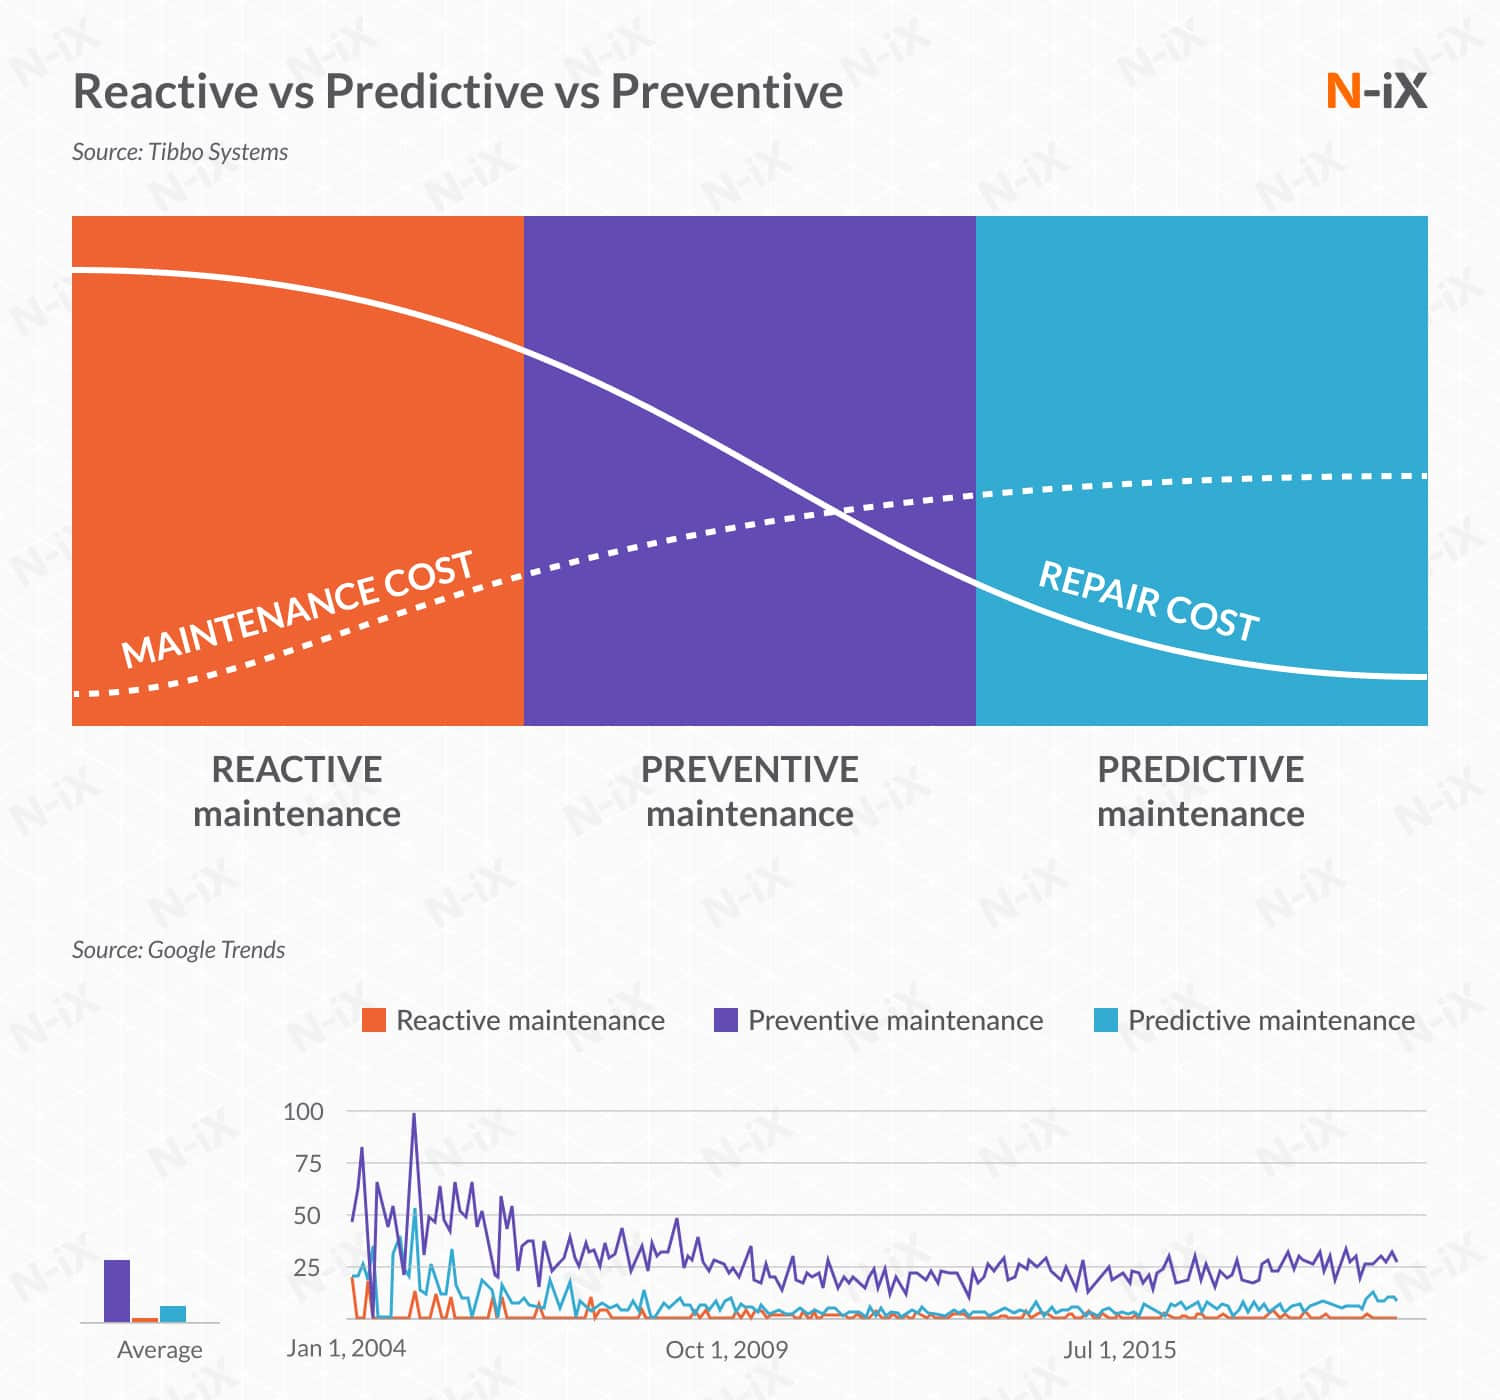 Reactive vs Predictive vs Preventive maintenance